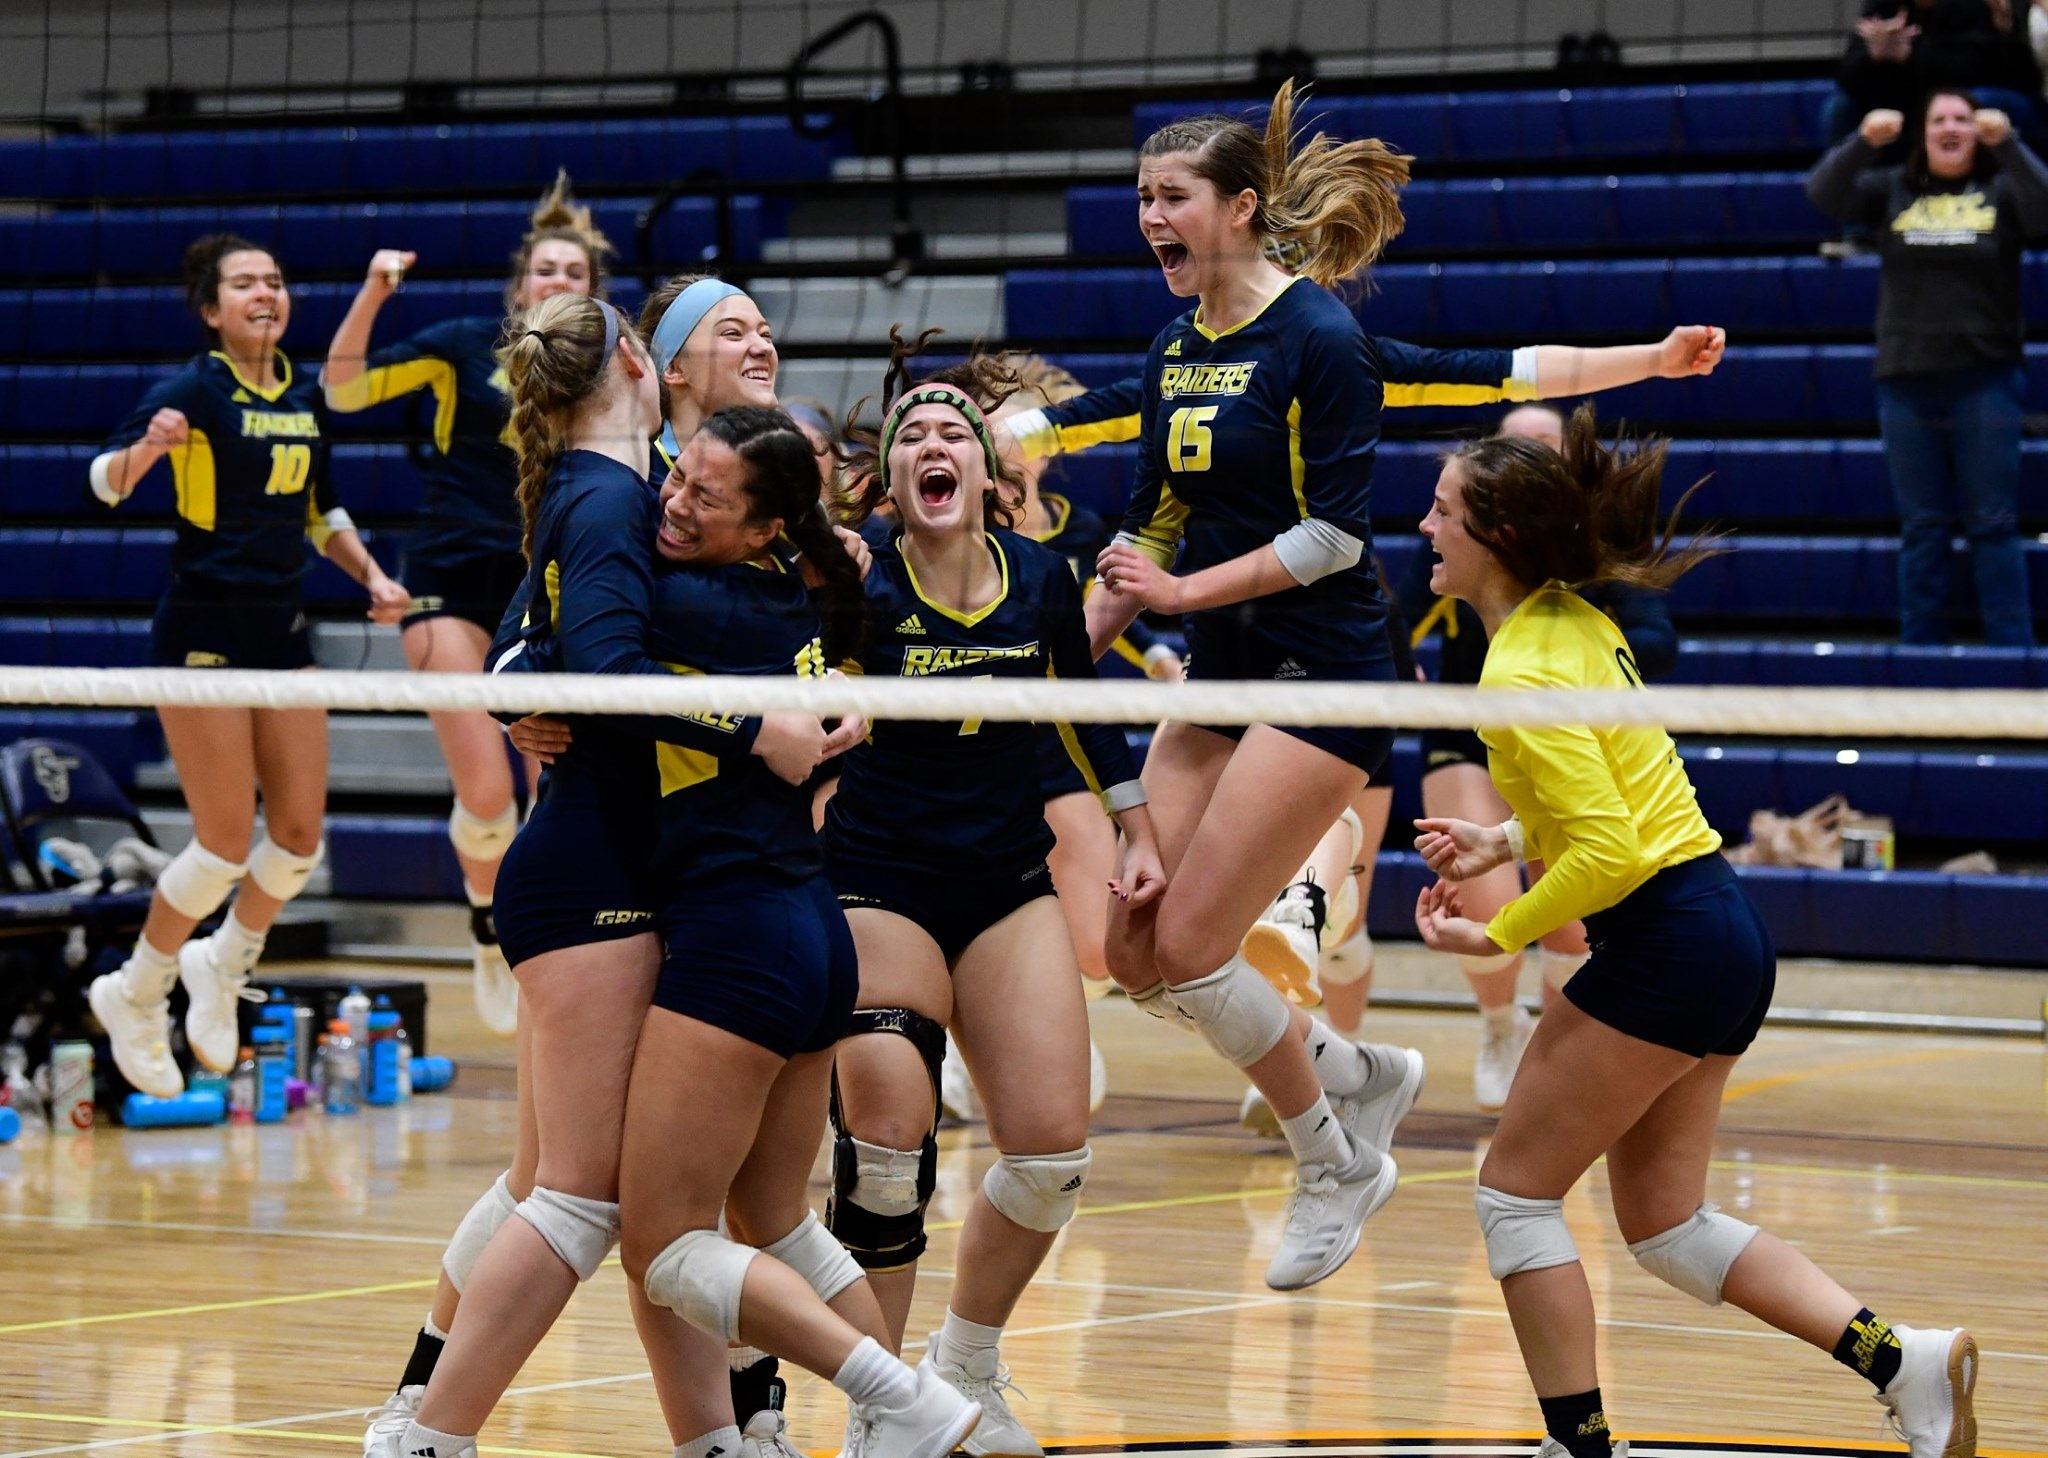 GRCC volleyball team members celebrating after winning district tournament.